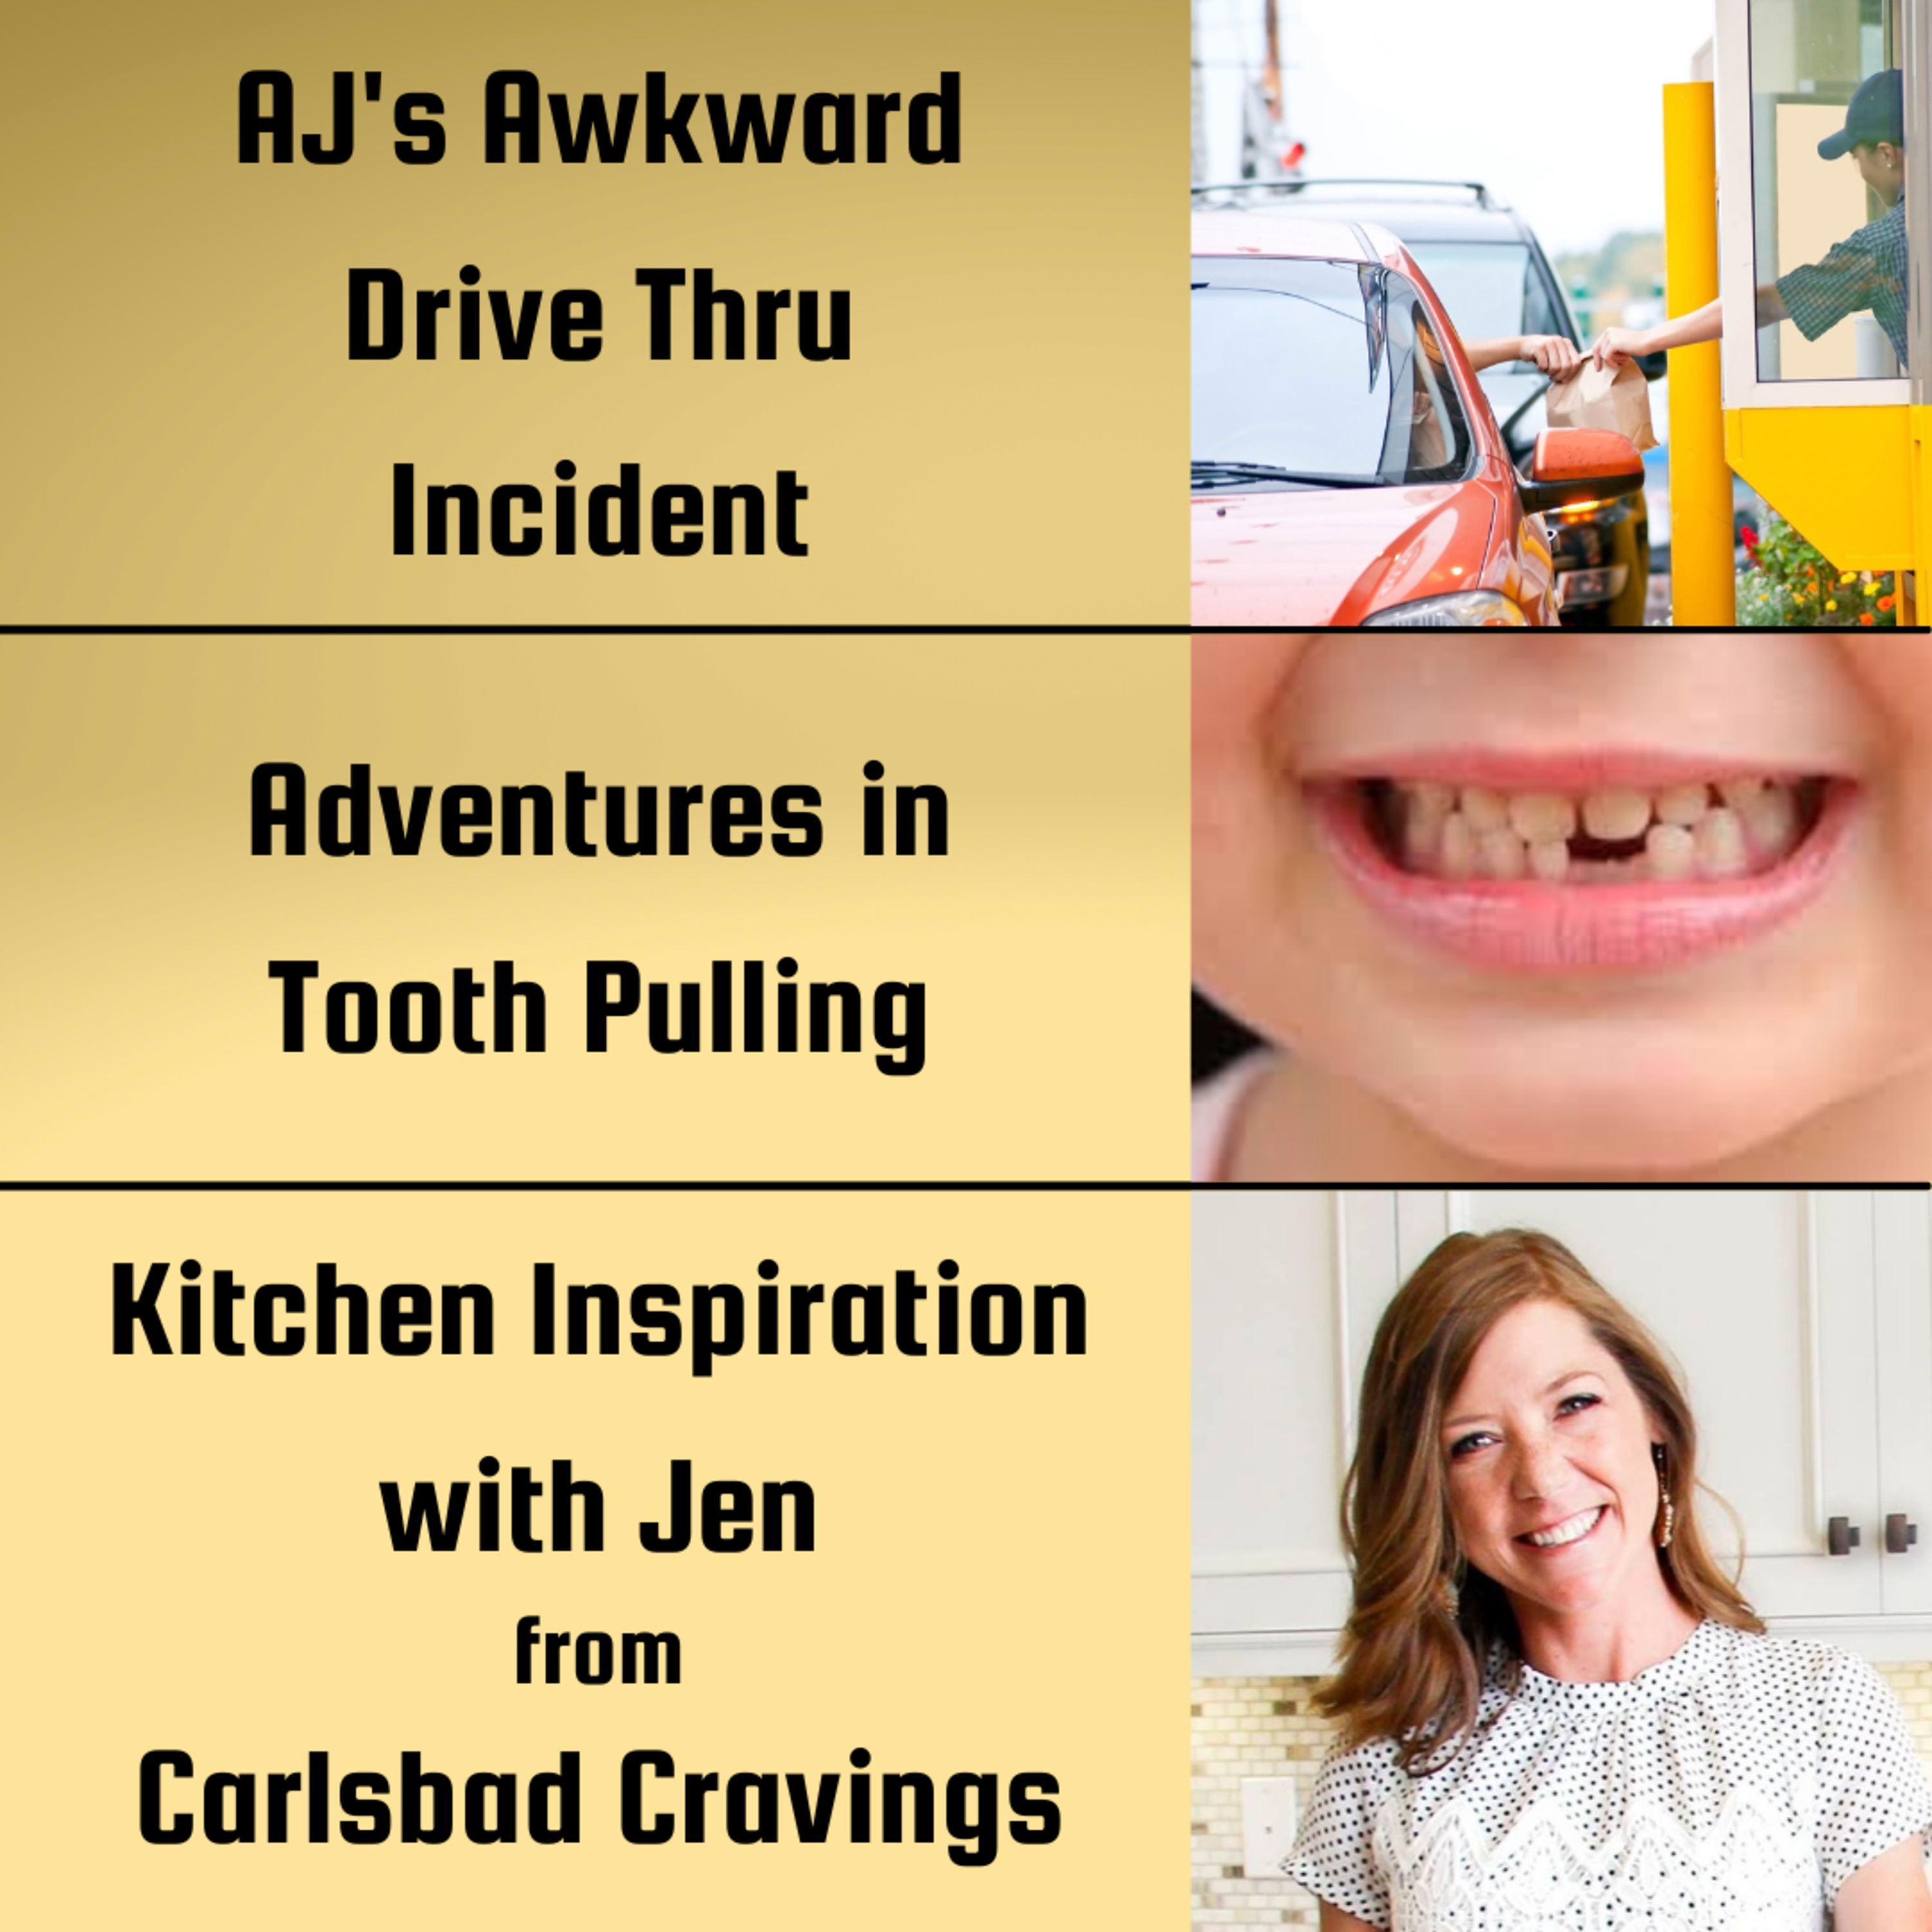 AJ's Awkward Drive Thru Incident, Adventures in Tooth Polling and Jen from Carlsbad Cravings